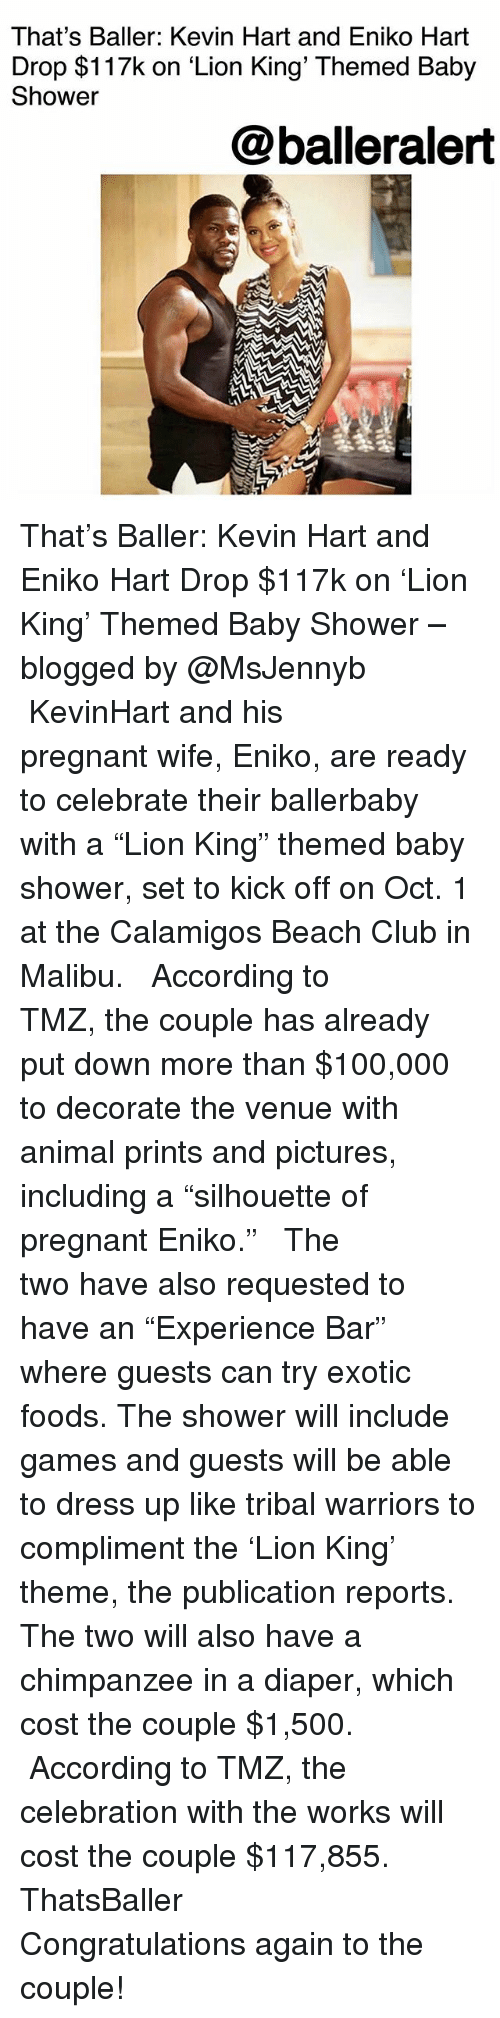 "Anaconda, Club, and Kevin Hart: That's Baller: Kevin Hart and Eniko Hart  Drop $117k on 'Lion King' Themed Baby  Shower  @balleralert That's Baller: Kevin Hart and Eniko Hart Drop $117k on 'Lion King' Themed Baby Shower – blogged by @MsJennyb ⠀⠀⠀⠀⠀⠀⠀ ⠀⠀⠀⠀⠀⠀⠀ KevinHart and his pregnant wife, Eniko, are ready to celebrate their ballerbaby with a ""Lion King"" themed baby shower, set to kick off on Oct. 1 at the Calamigos Beach Club in Malibu. ⠀⠀⠀⠀⠀⠀⠀ ⠀⠀⠀⠀⠀⠀⠀ According to TMZ, the couple has already put down more than $100,000 to decorate the venue with animal prints and pictures, including a ""silhouette of pregnant Eniko."" ⠀⠀⠀⠀⠀⠀⠀ ⠀⠀⠀⠀⠀⠀⠀ The two have also requested to have an ""Experience Bar"" where guests can try exotic foods. The shower will include games and guests will be able to dress up like tribal warriors to compliment the 'Lion King' theme, the publication reports. The two will also have a chimpanzee in a diaper, which cost the couple $1,500. ⠀⠀⠀⠀⠀⠀⠀ ⠀⠀⠀⠀⠀⠀⠀ According to TMZ, the celebration with the works will cost the couple $117,855. ThatsBaller ⠀⠀⠀⠀⠀⠀⠀ ⠀⠀⠀⠀⠀⠀⠀ Congratulations again to the couple!"